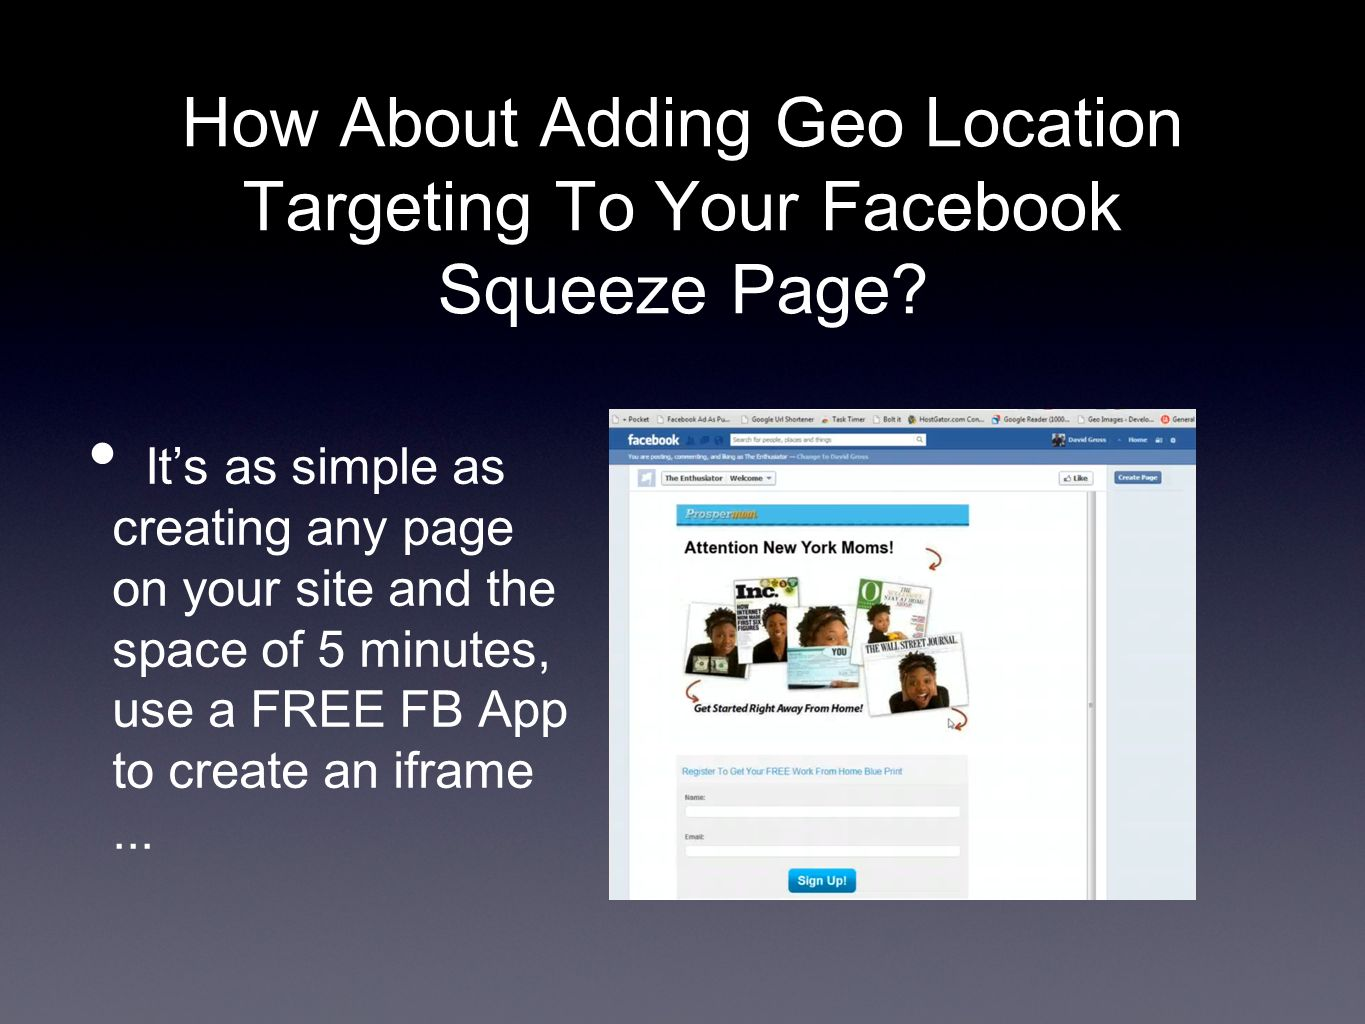 How About Adding Geo Location Targeting To Your Facebook Squeeze Page.